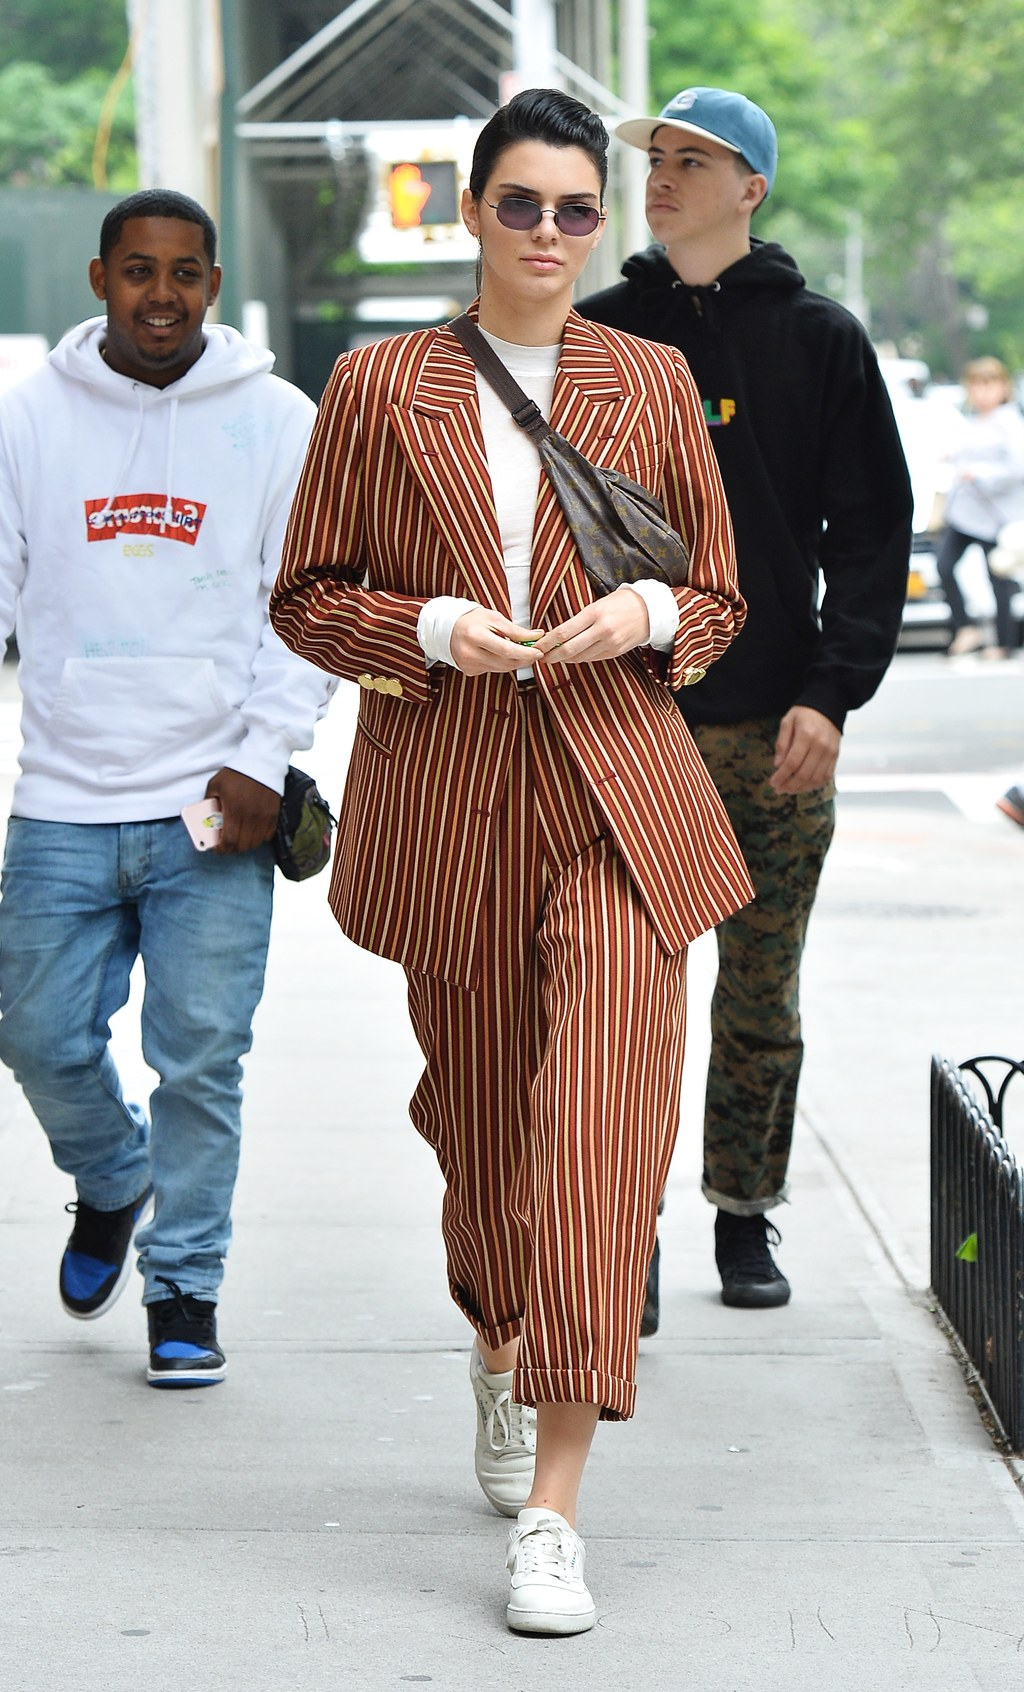 Kendall Jenner is all smiles as she takes a stroll rocking a pinstripe suit in SoHo, New York City